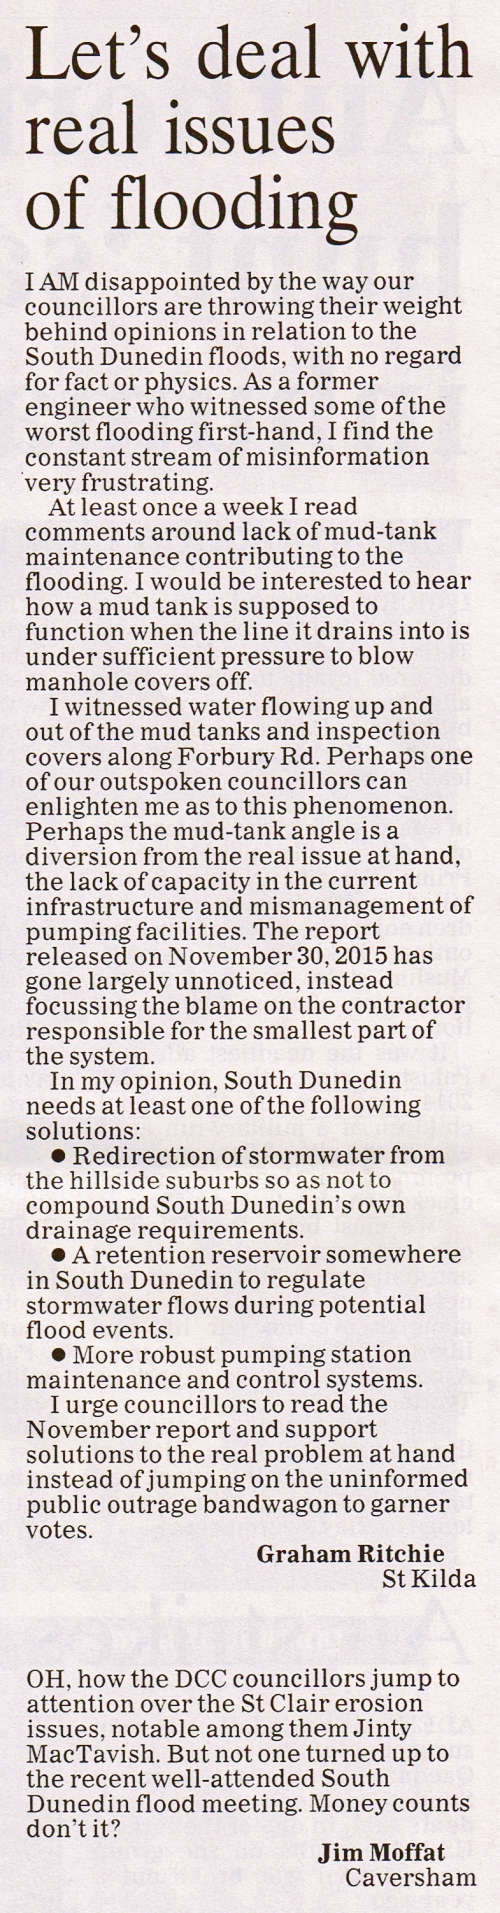 ODT 29.3.16 Letters to editor Ritchie Moffat p6